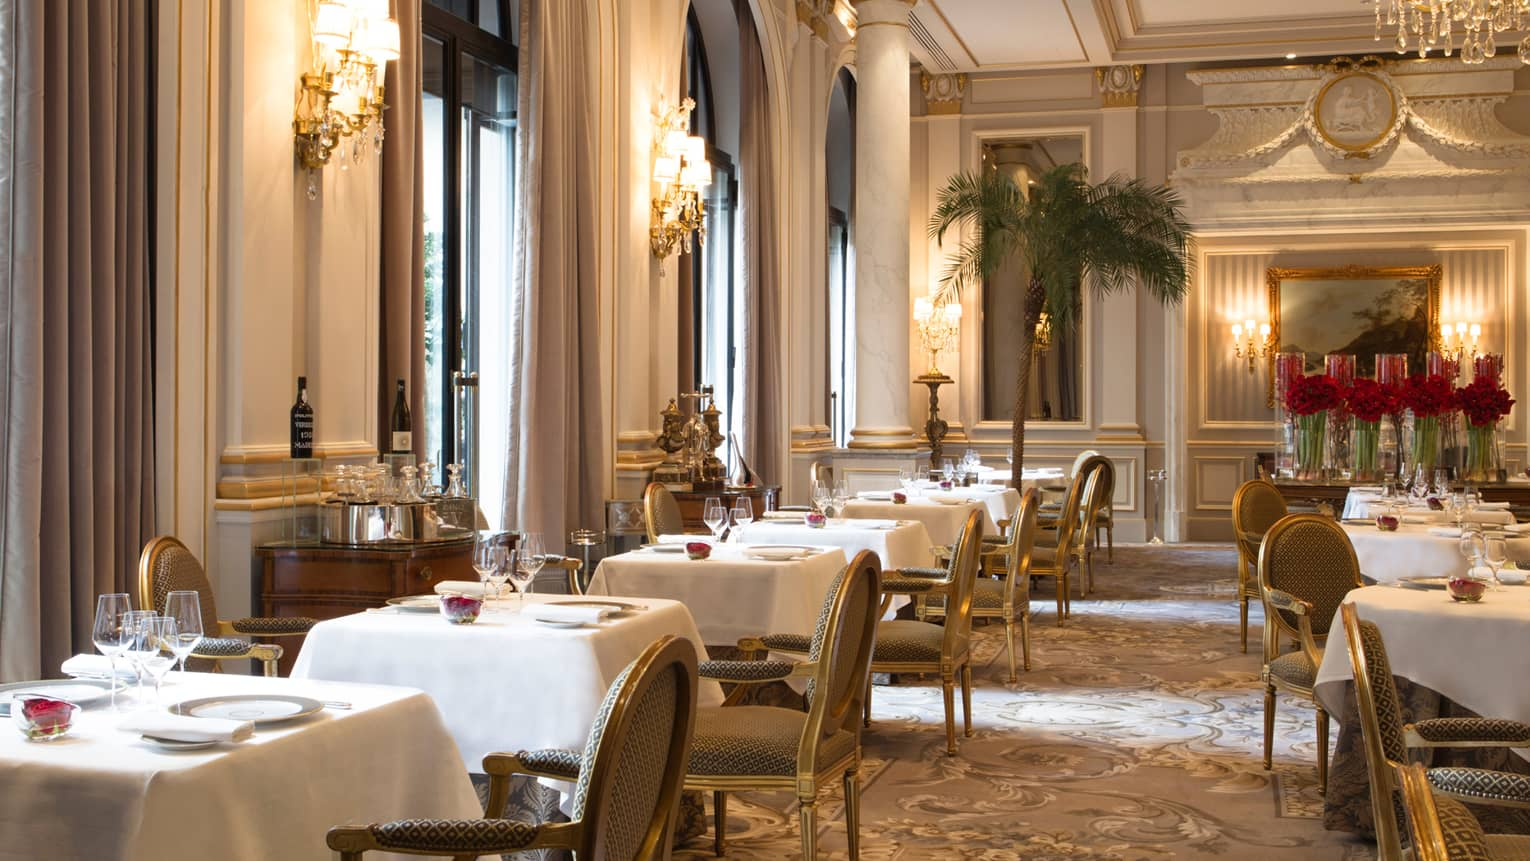 Le Cinq dining room, tables and chairs under soaring ceilings, windows, pillars, potted palms